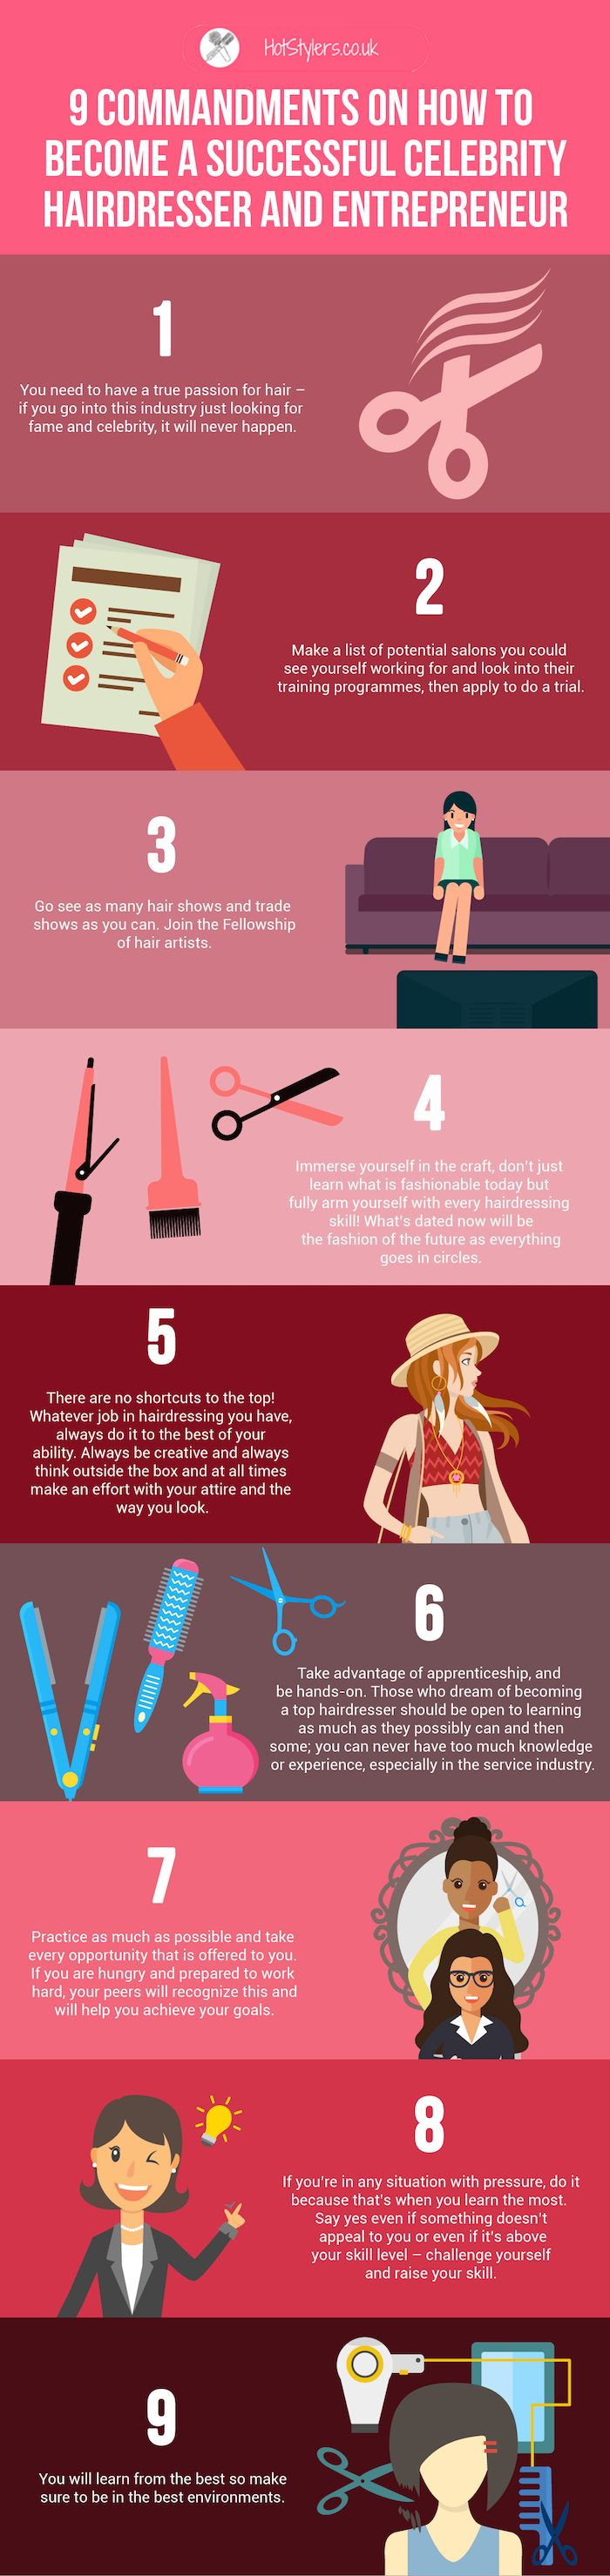 10 quick and easy hairstyles step by step the learnify - 9 Commandments On How To Become A Successful Celebrity Hairdresser And Entrepreneur